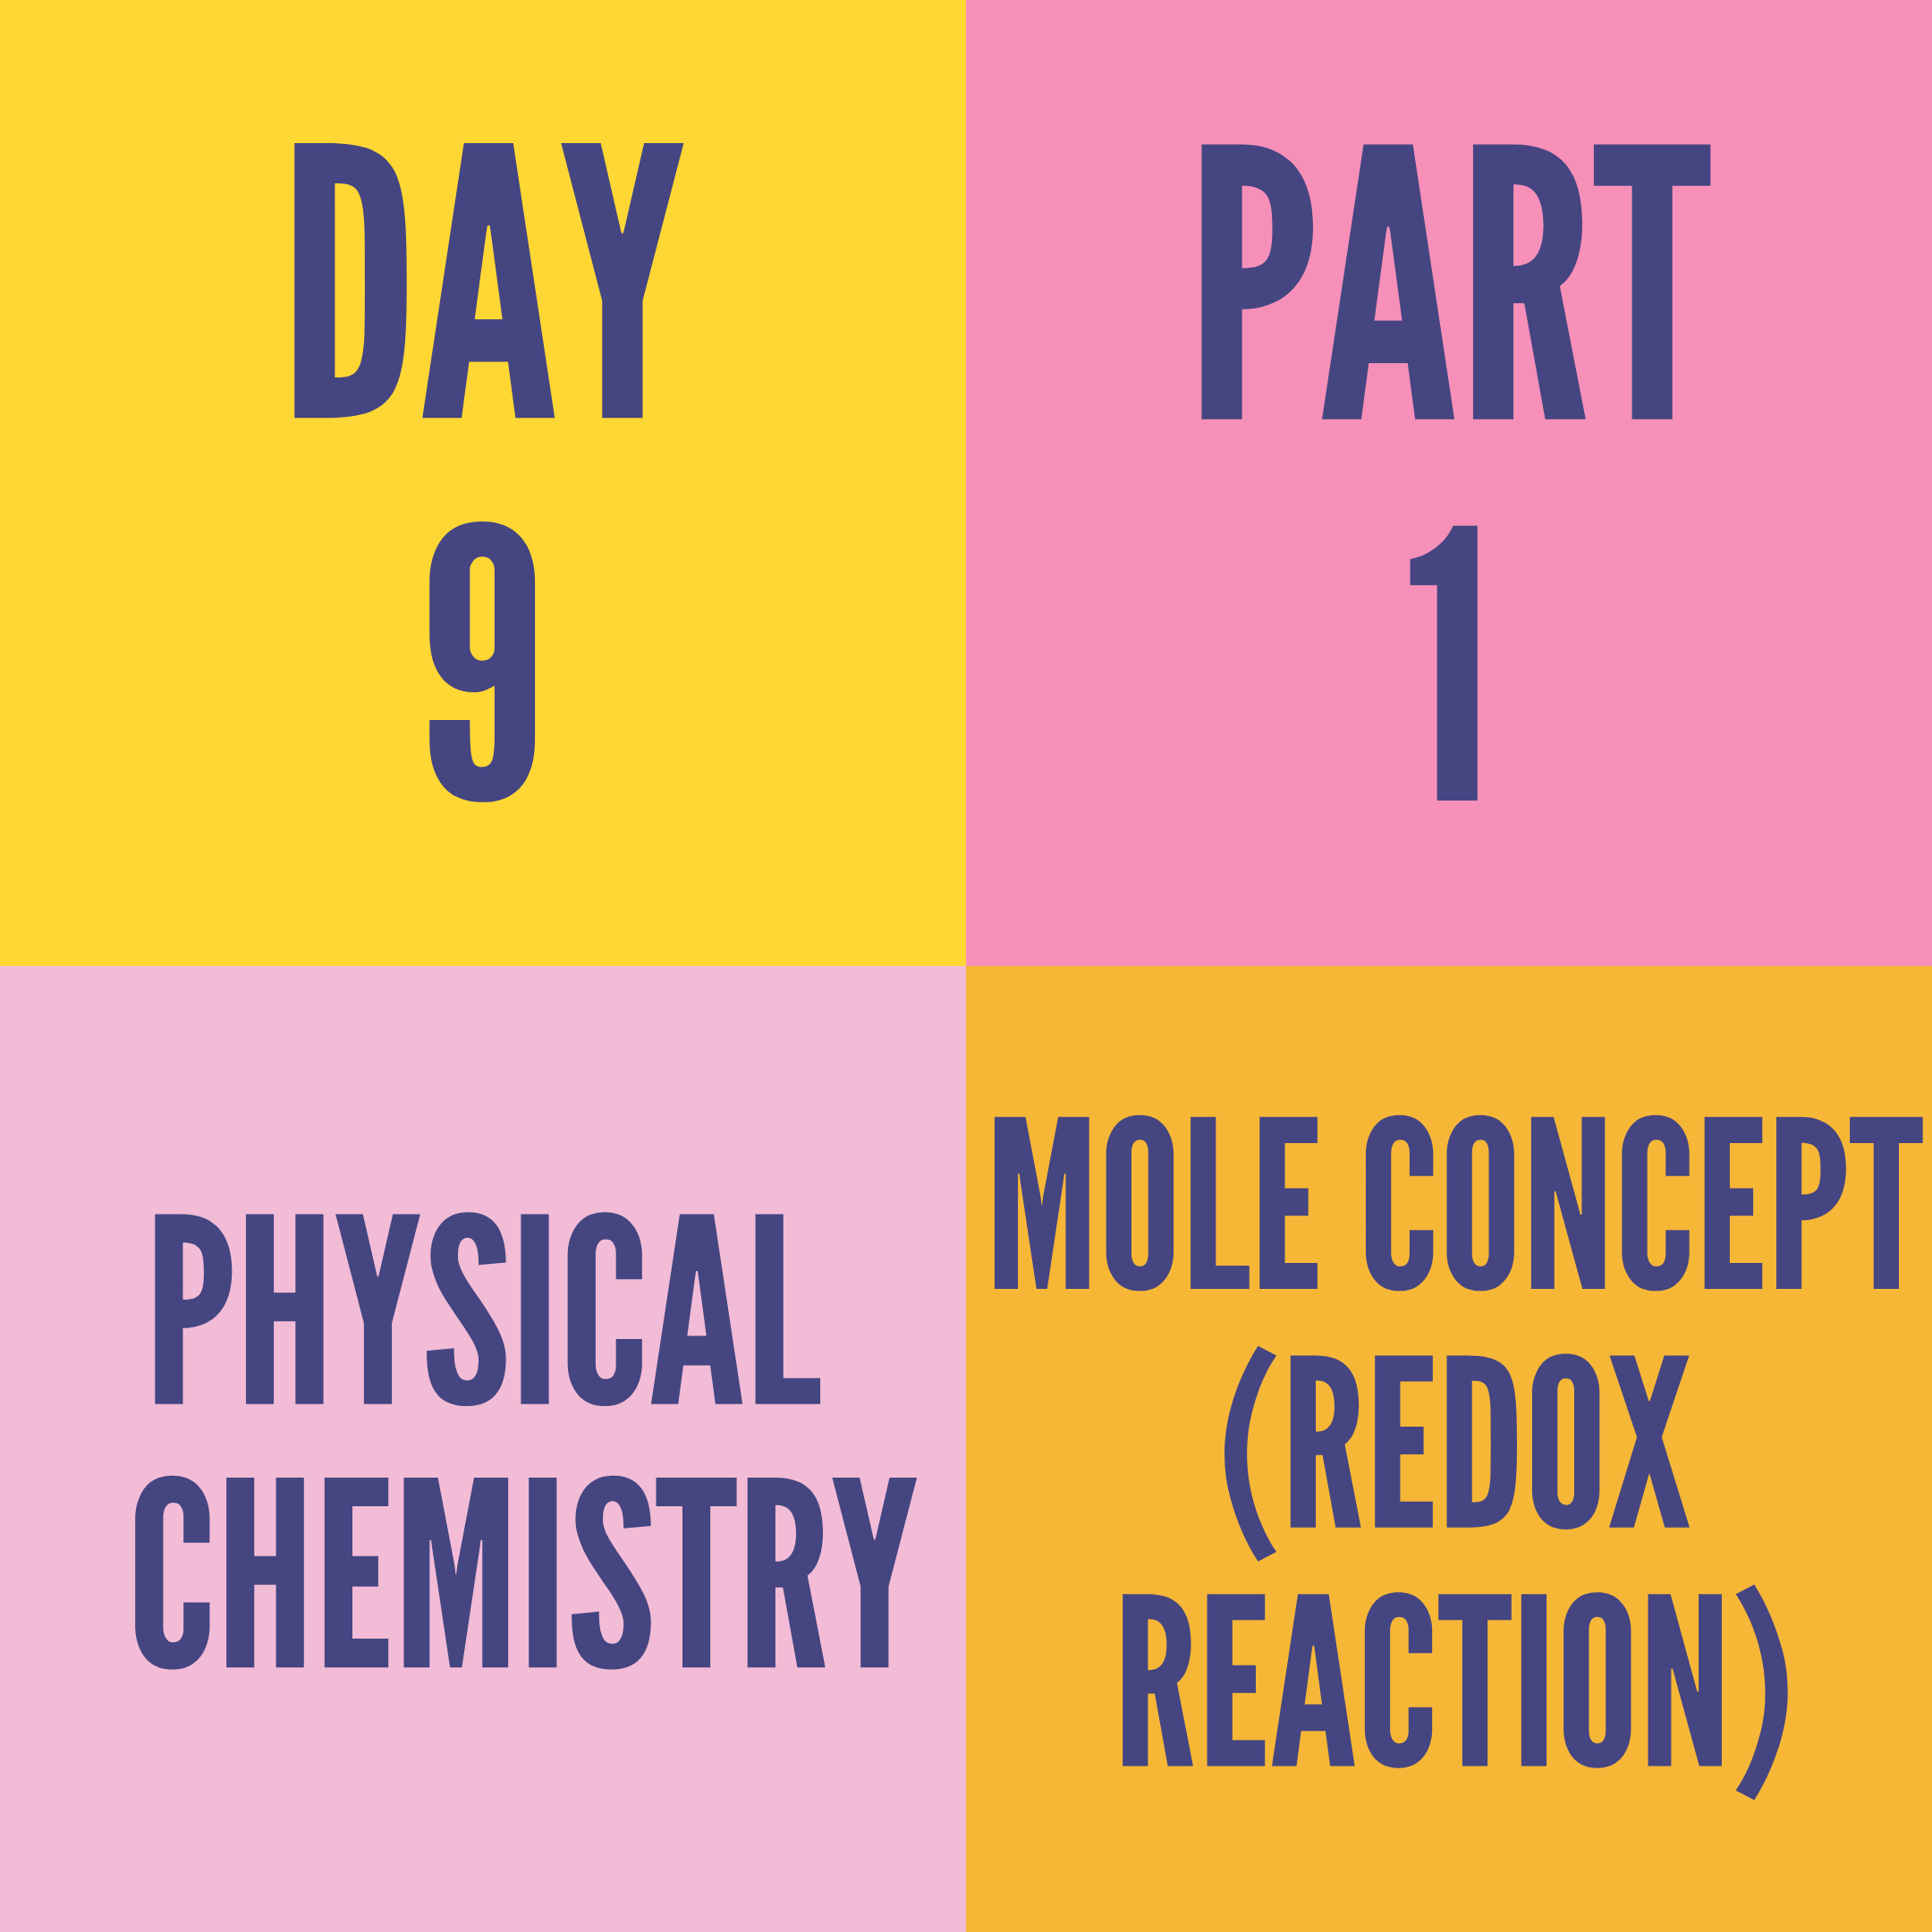 DAY-9 PART-1 MOLE CONCEPT (REDOX REACTION)